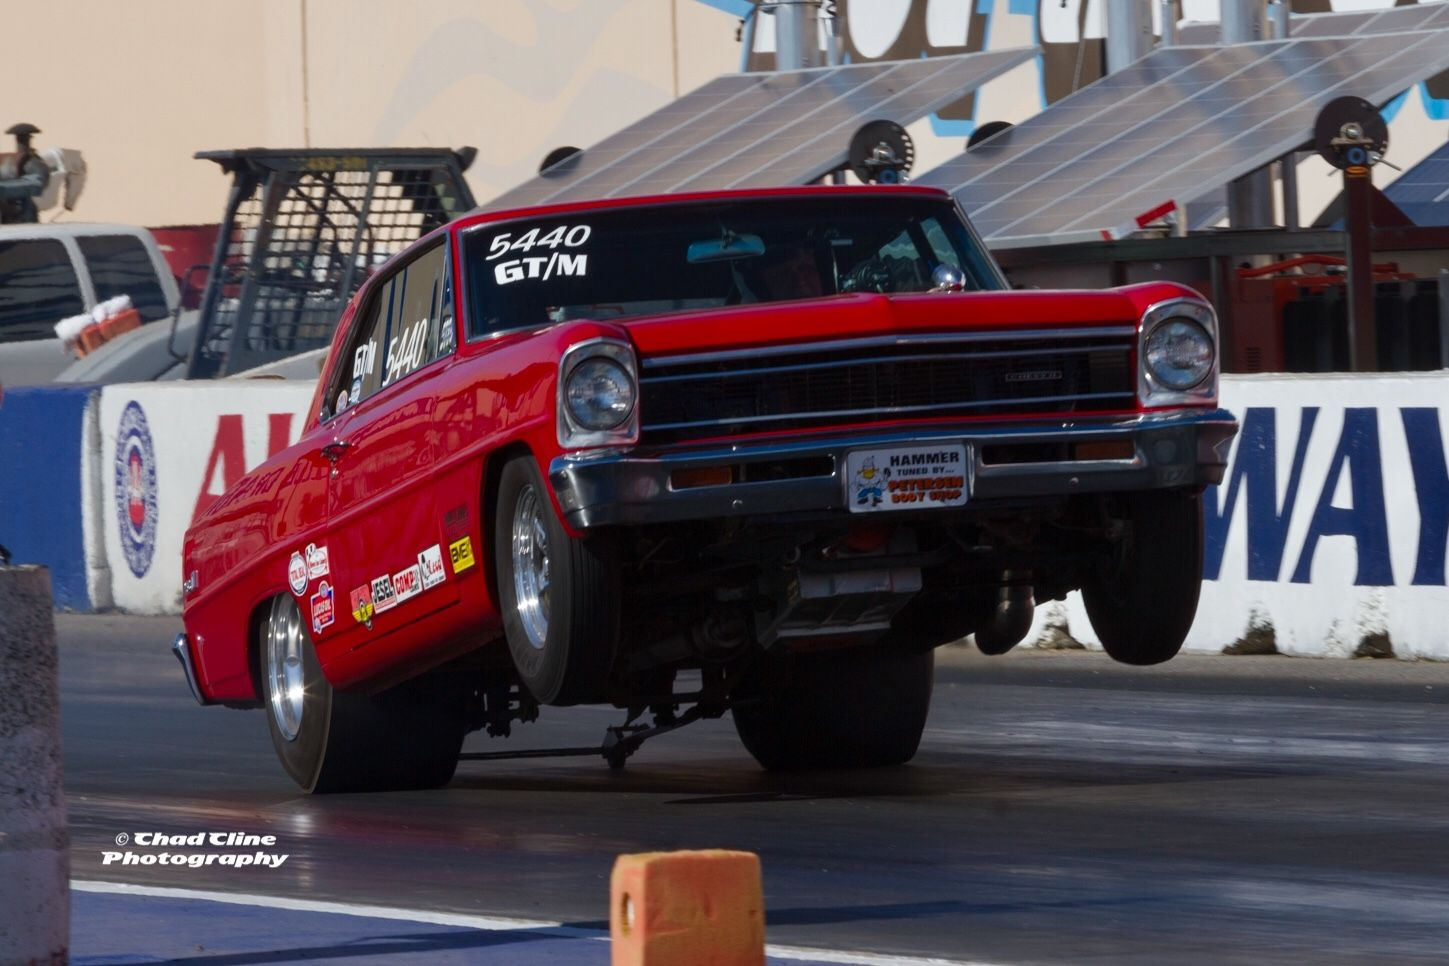 Nhra Drag Racing Chevy Nova Wheelie Wheelsup Chevrolet Fontana Drag Car Drag Racing Cars Drag Racing Old Race Cars